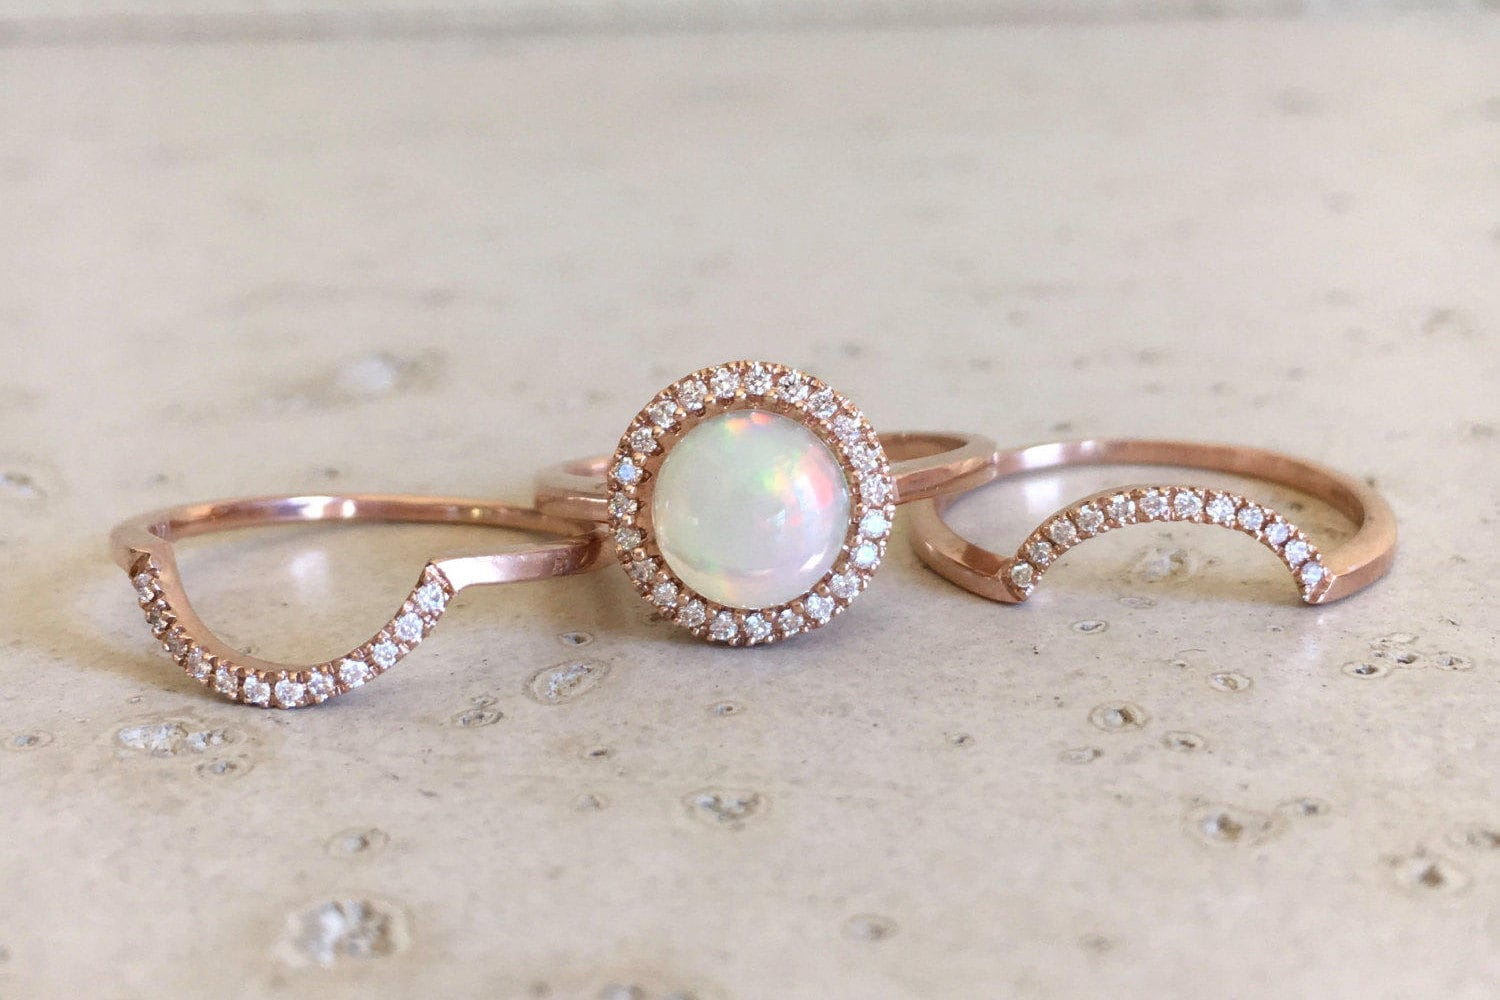 rose rings tier radiance opal gr gold blushing sea ring diamond engagement natural unique wedding